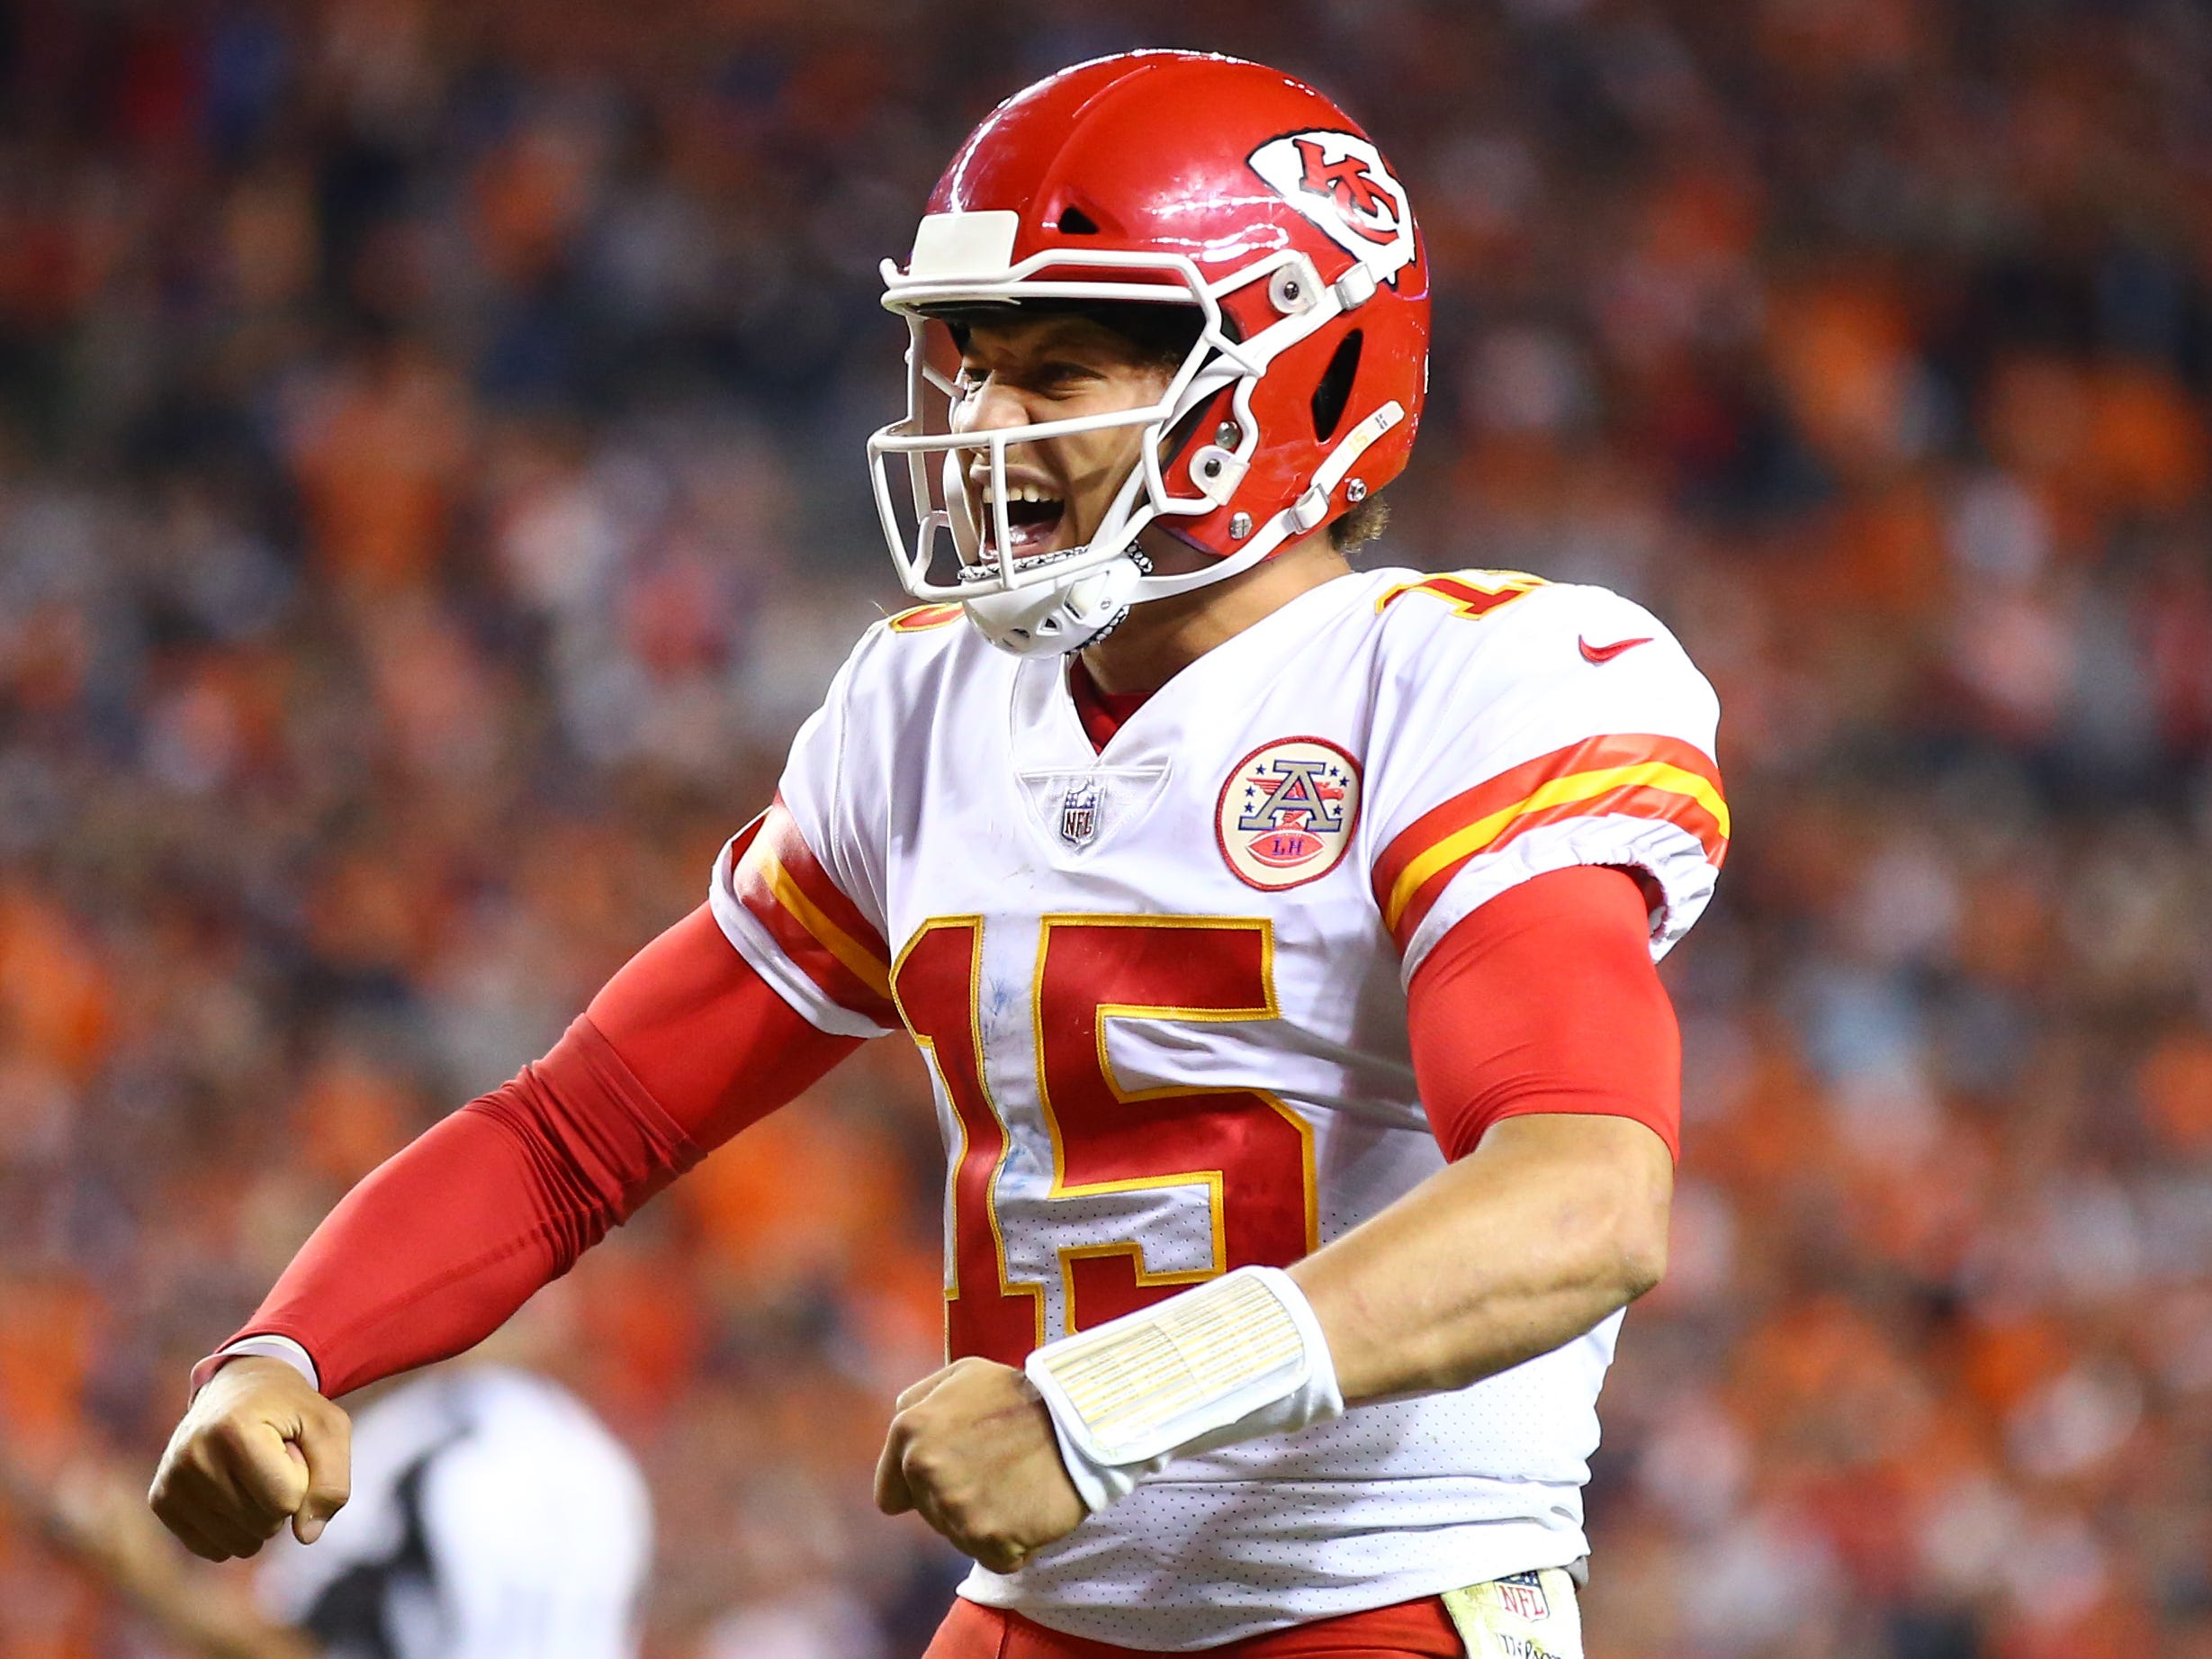 Patrick Mahomes leads game-winning drive as Kansas City Chiefs survive vs. Denver Broncos